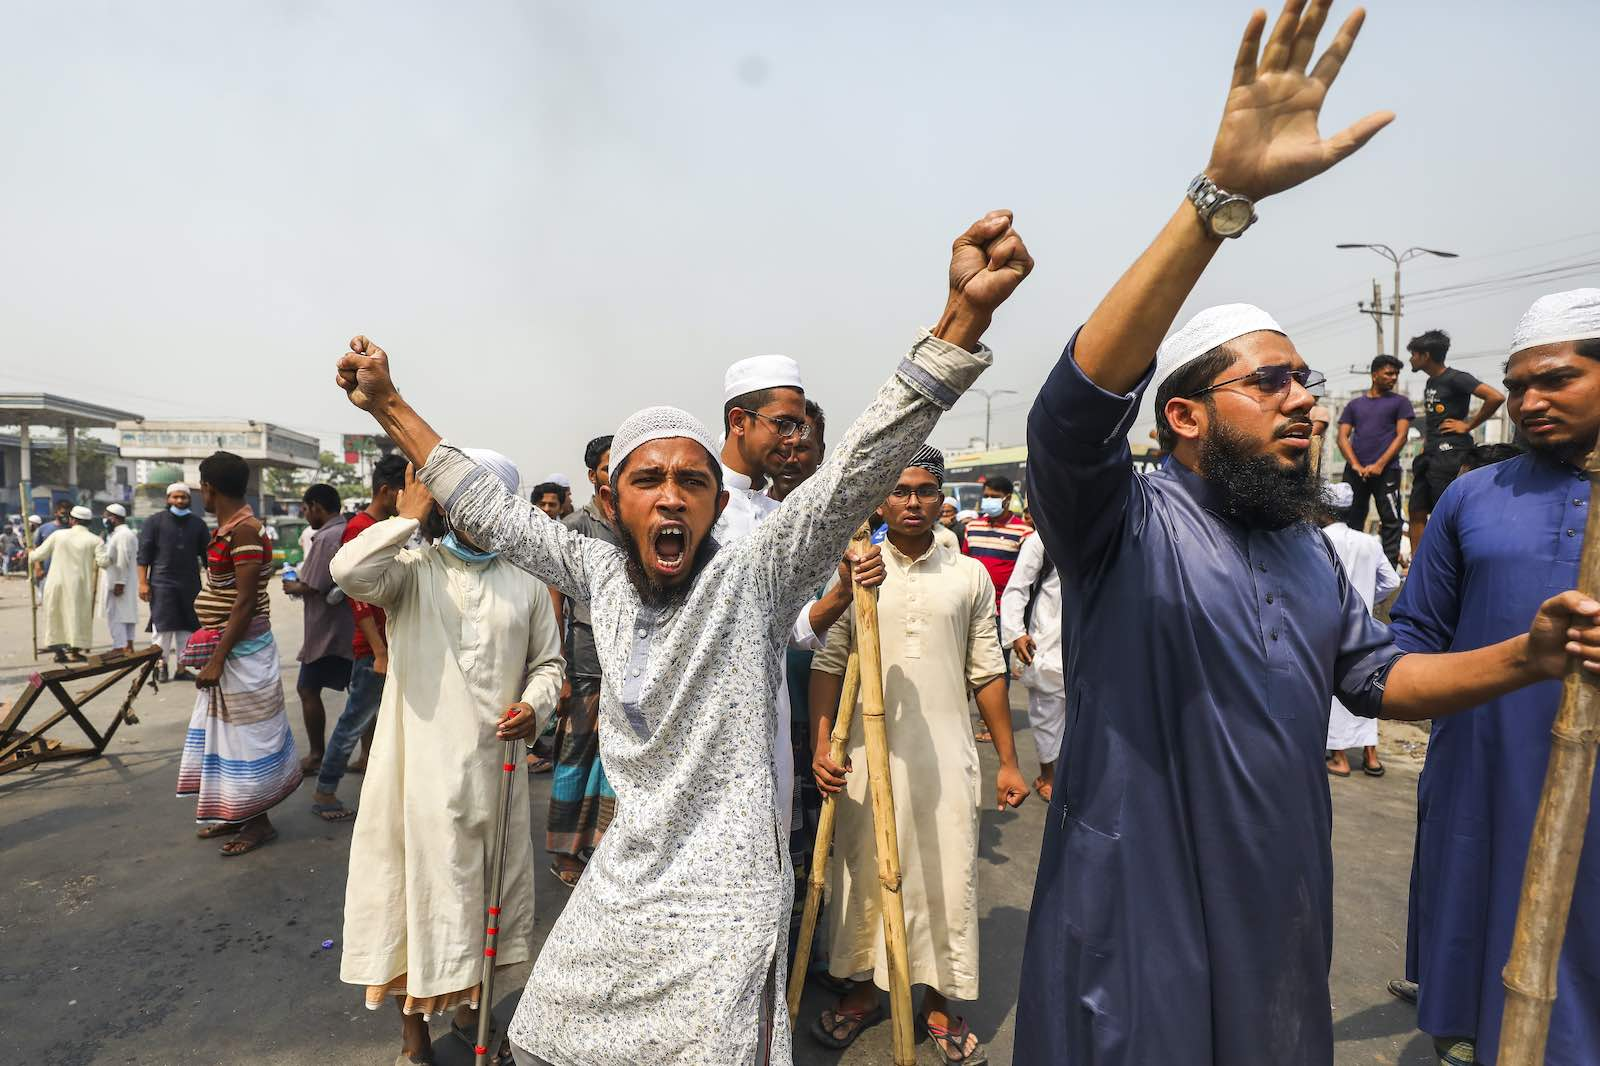 Activists from Hefazat-e-Islam block a road following deadly clashes with police over Indian Prime Minister Narendra Modi's visit, 28 March 2021 in Narayanganj, Bangladesh (Ahmed Salahuddin/NurPhoto via Getty Images)